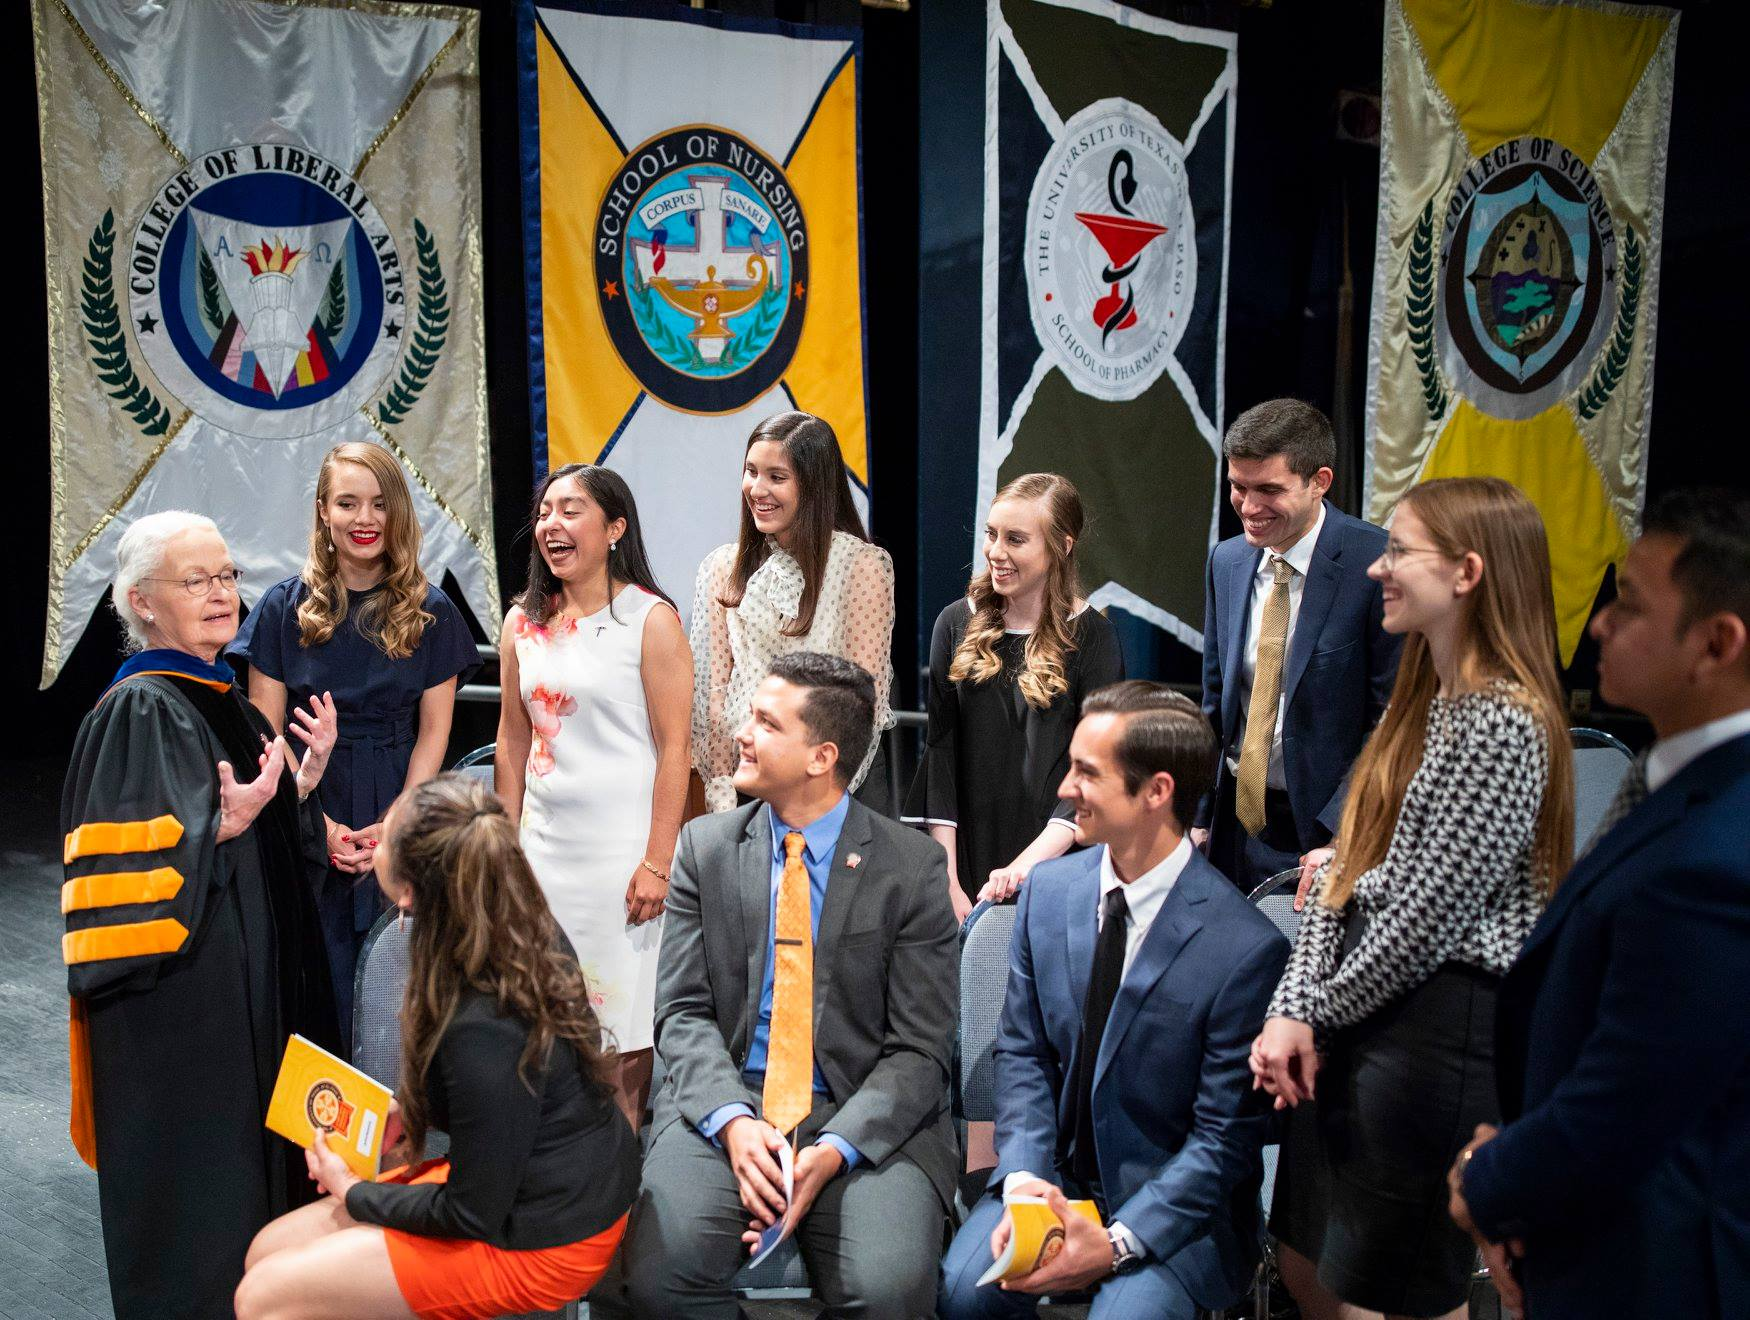 UTEP President Diana Natalicio talked to UTEP's Top Ten Seniors at the the Honors Convocation ceremony Sunday, April 28 in Magoffin Auditorium. UTEP honored the achievements of students, faculty and staff in areas of service, leadership and academics at the annual event.